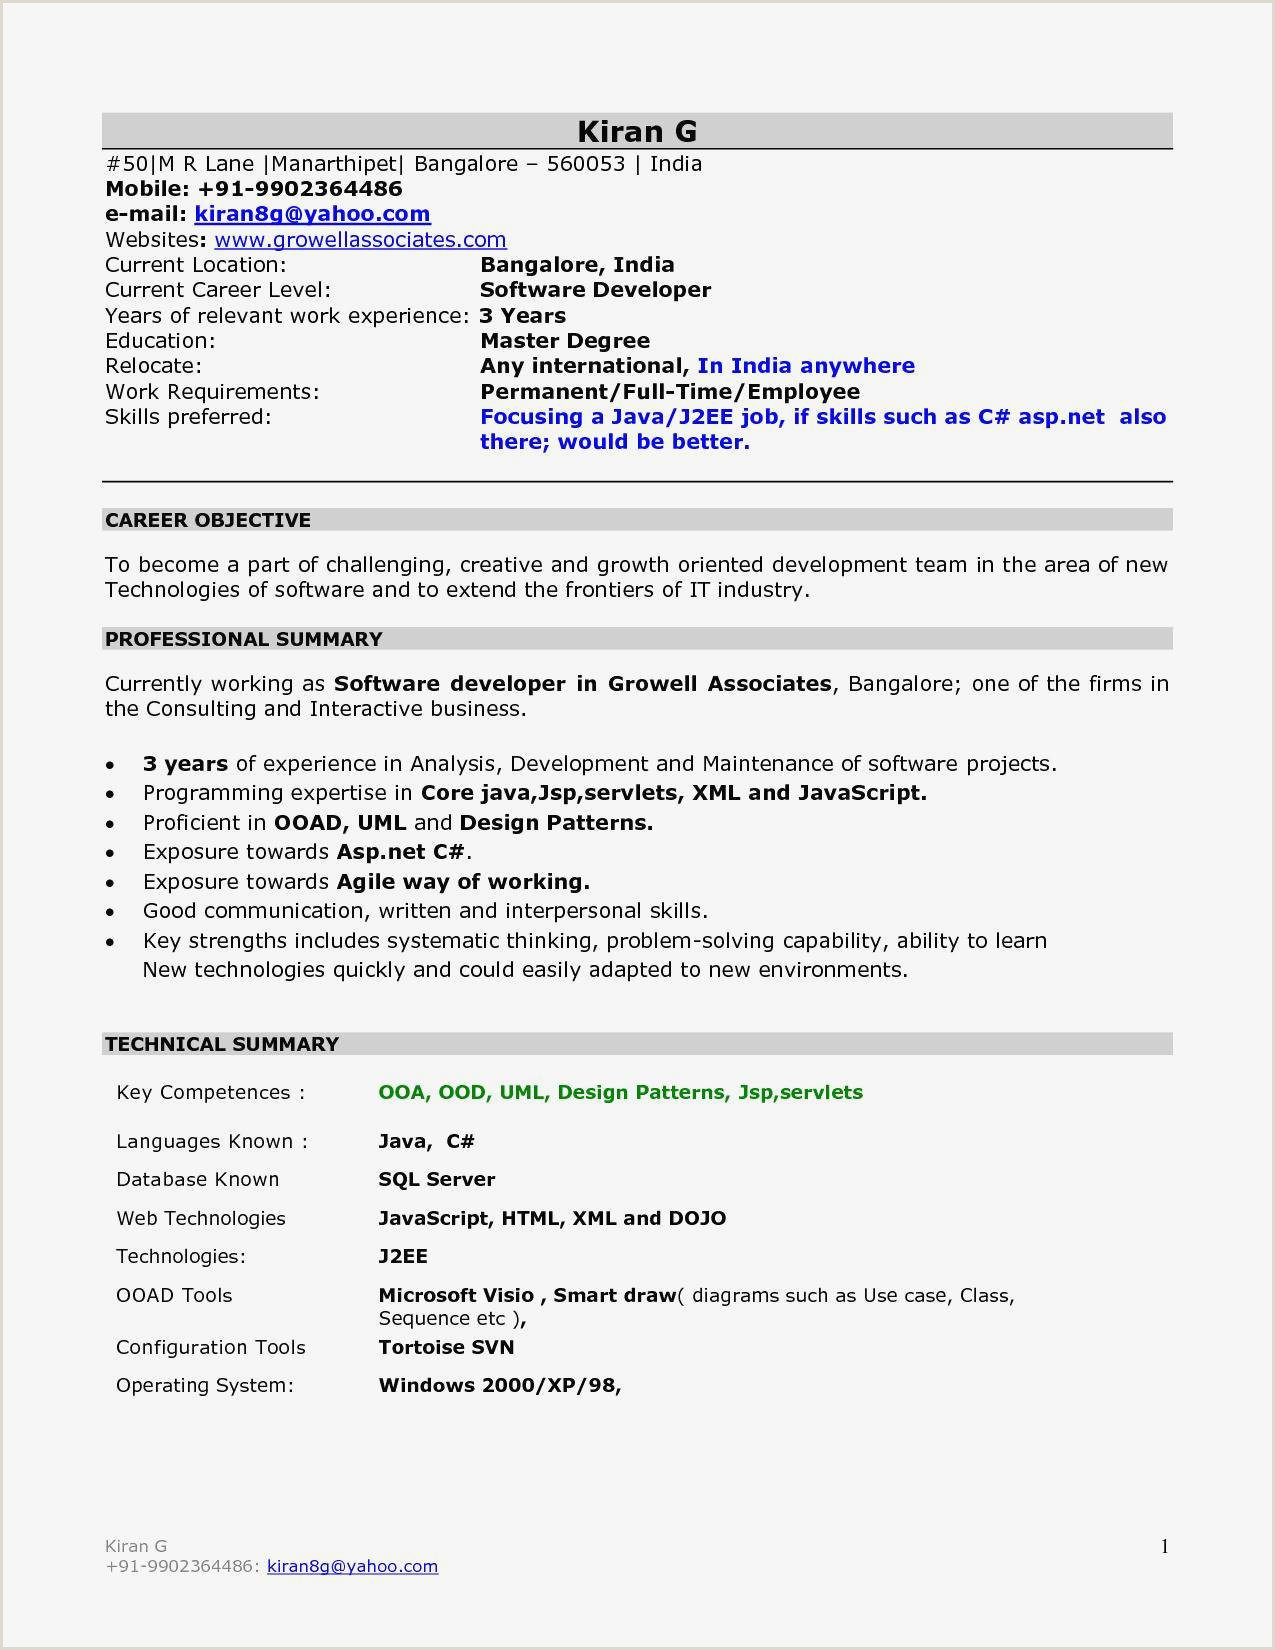 Fresher Resume format Doc India Cv Vierge Meilleur De Resume format for Freshers Mechanical